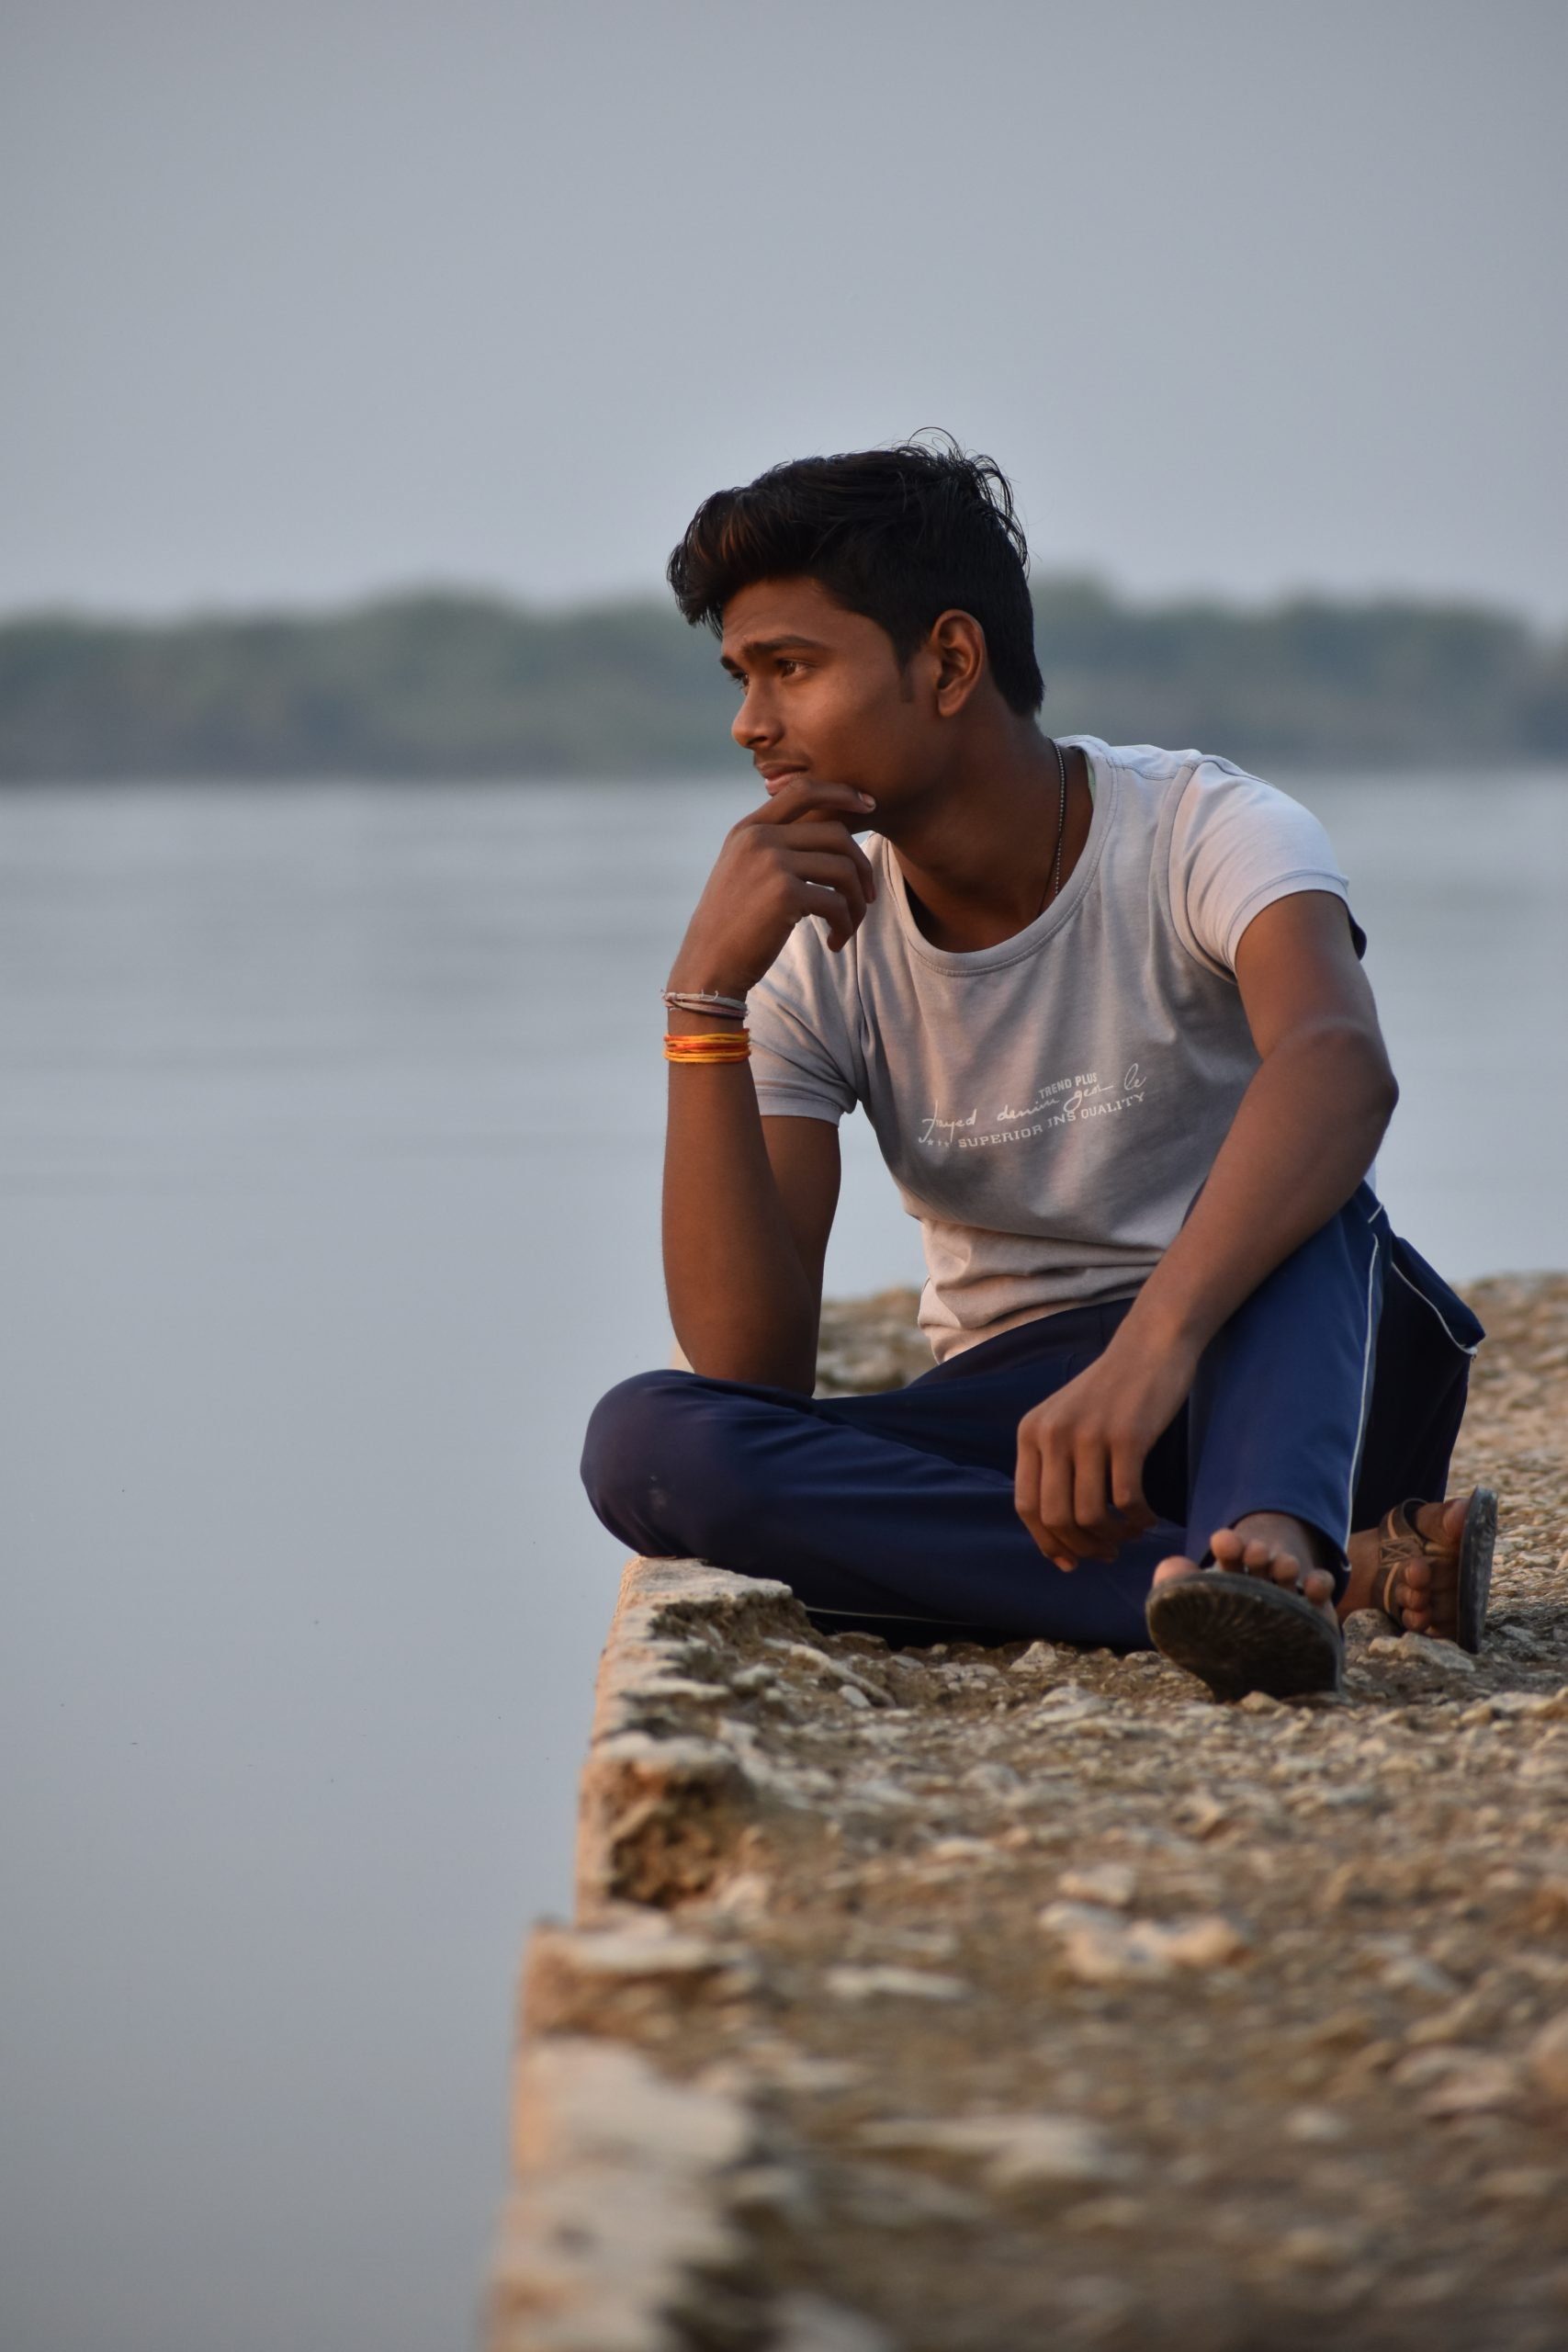 A boy in a thought